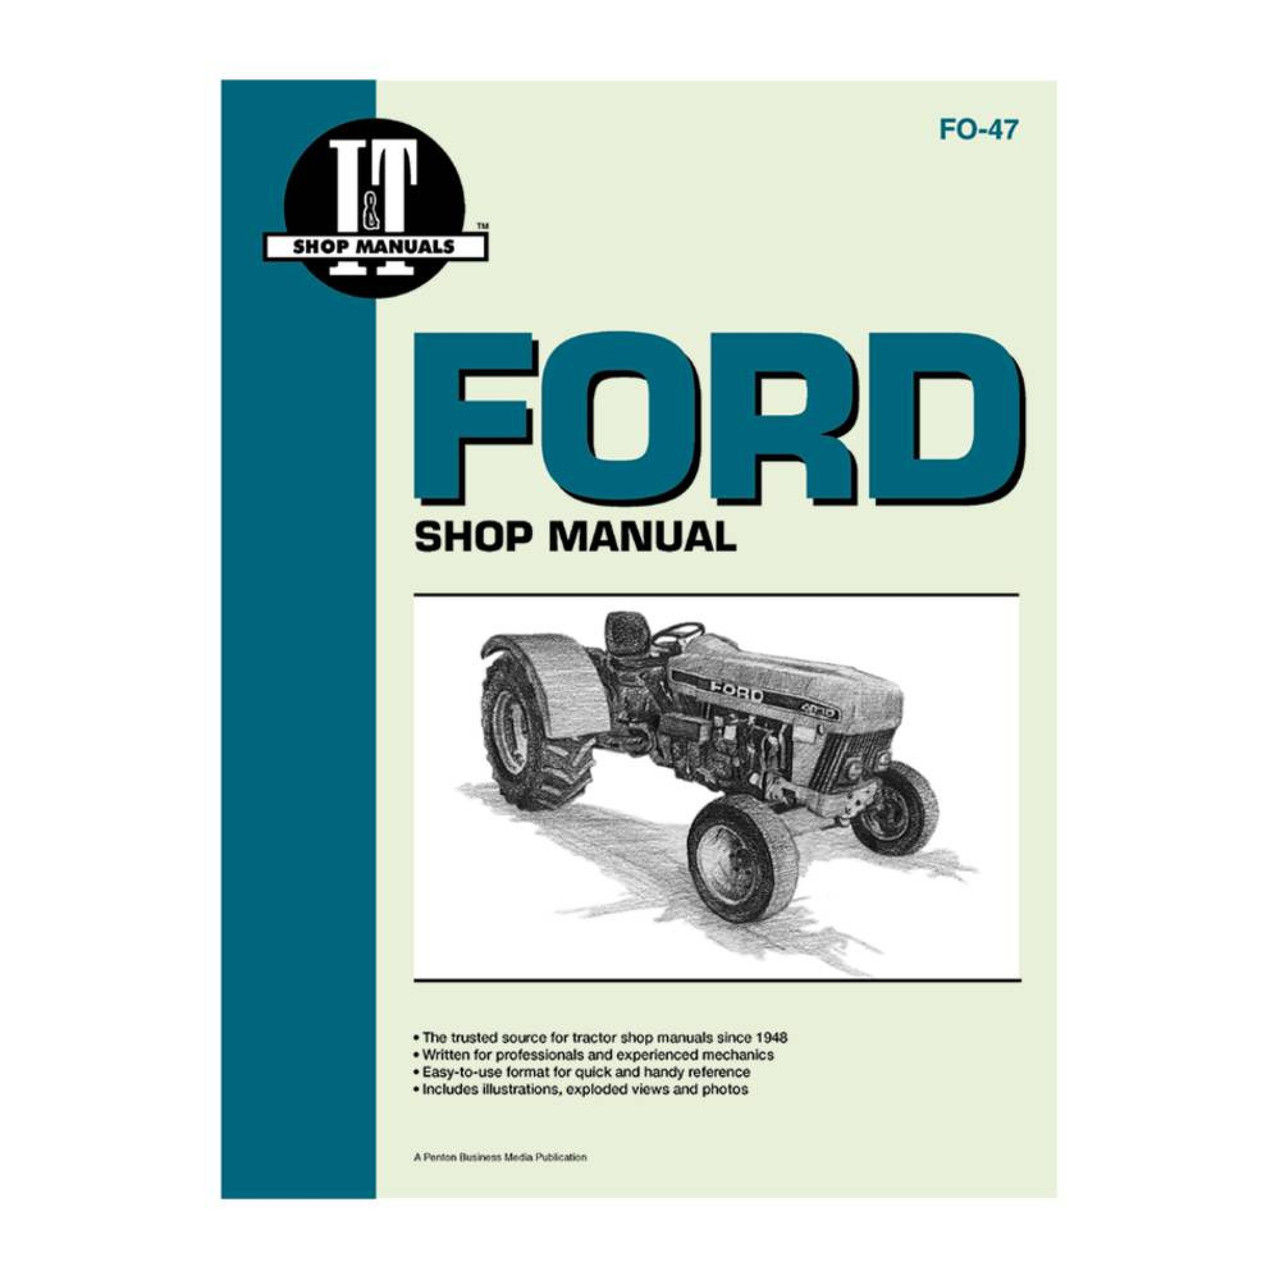 Ford 3230 Wiring Diagram - Wiring Diagram DB New Holland Wiring Diagrams on